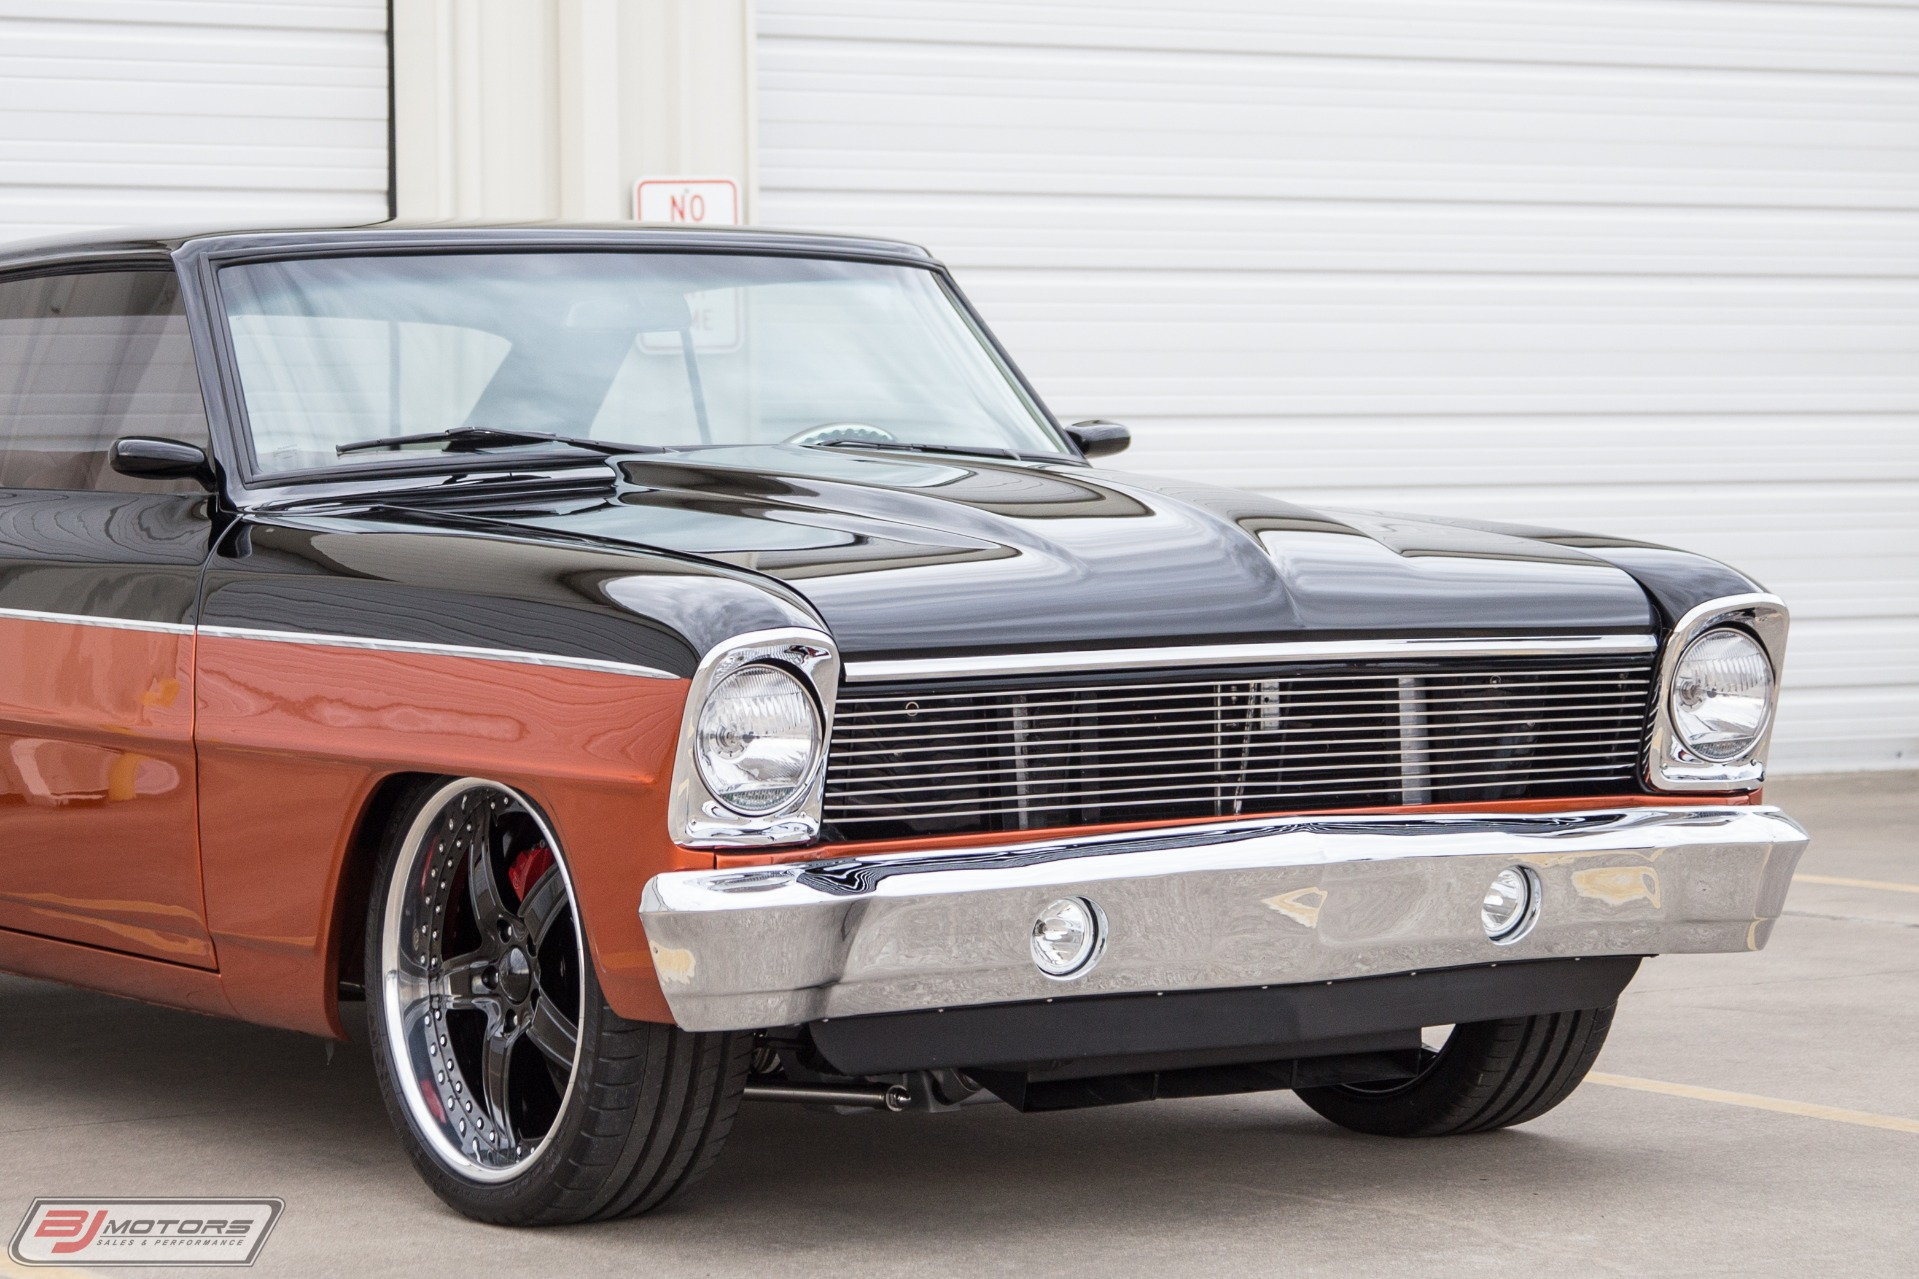 Used-1967-Chevrolet-Chevy-II-LS9-Supercharged-ZR1